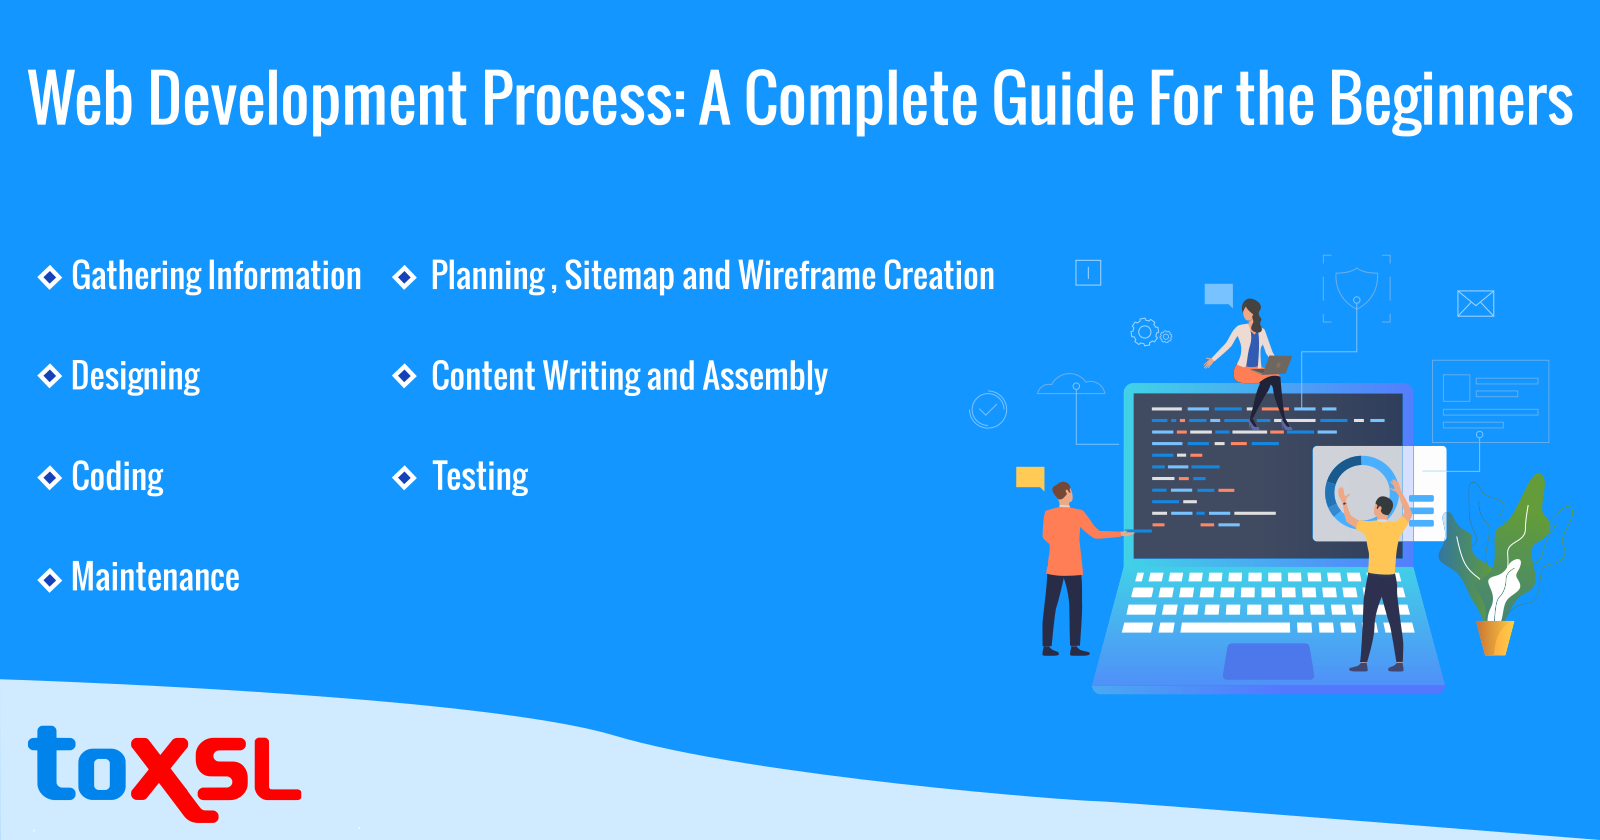 Web Development Process: A Complete Guide For the Beginners